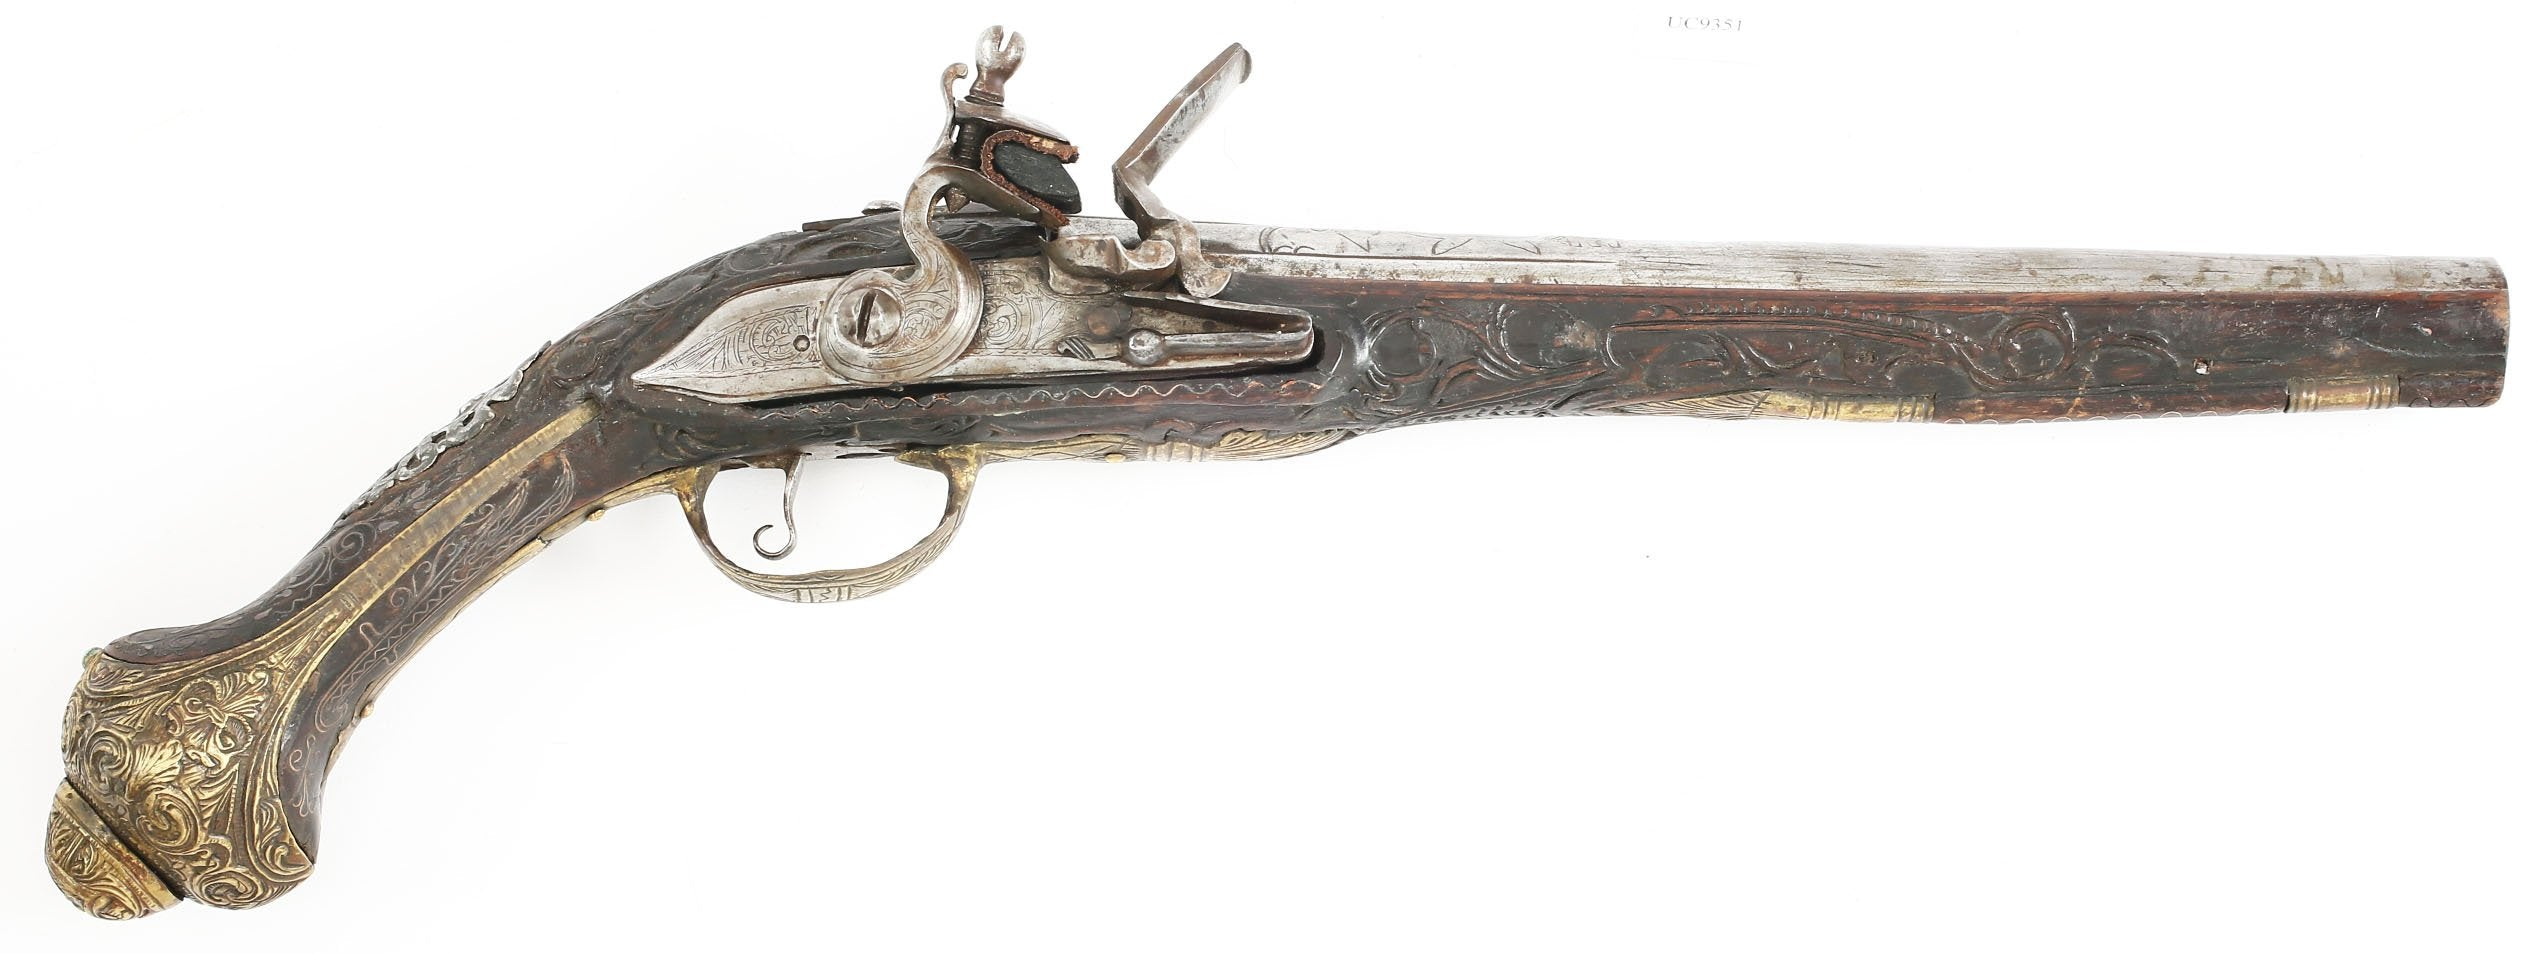 FINE TURKISH FLINTLOCK PISTOL.